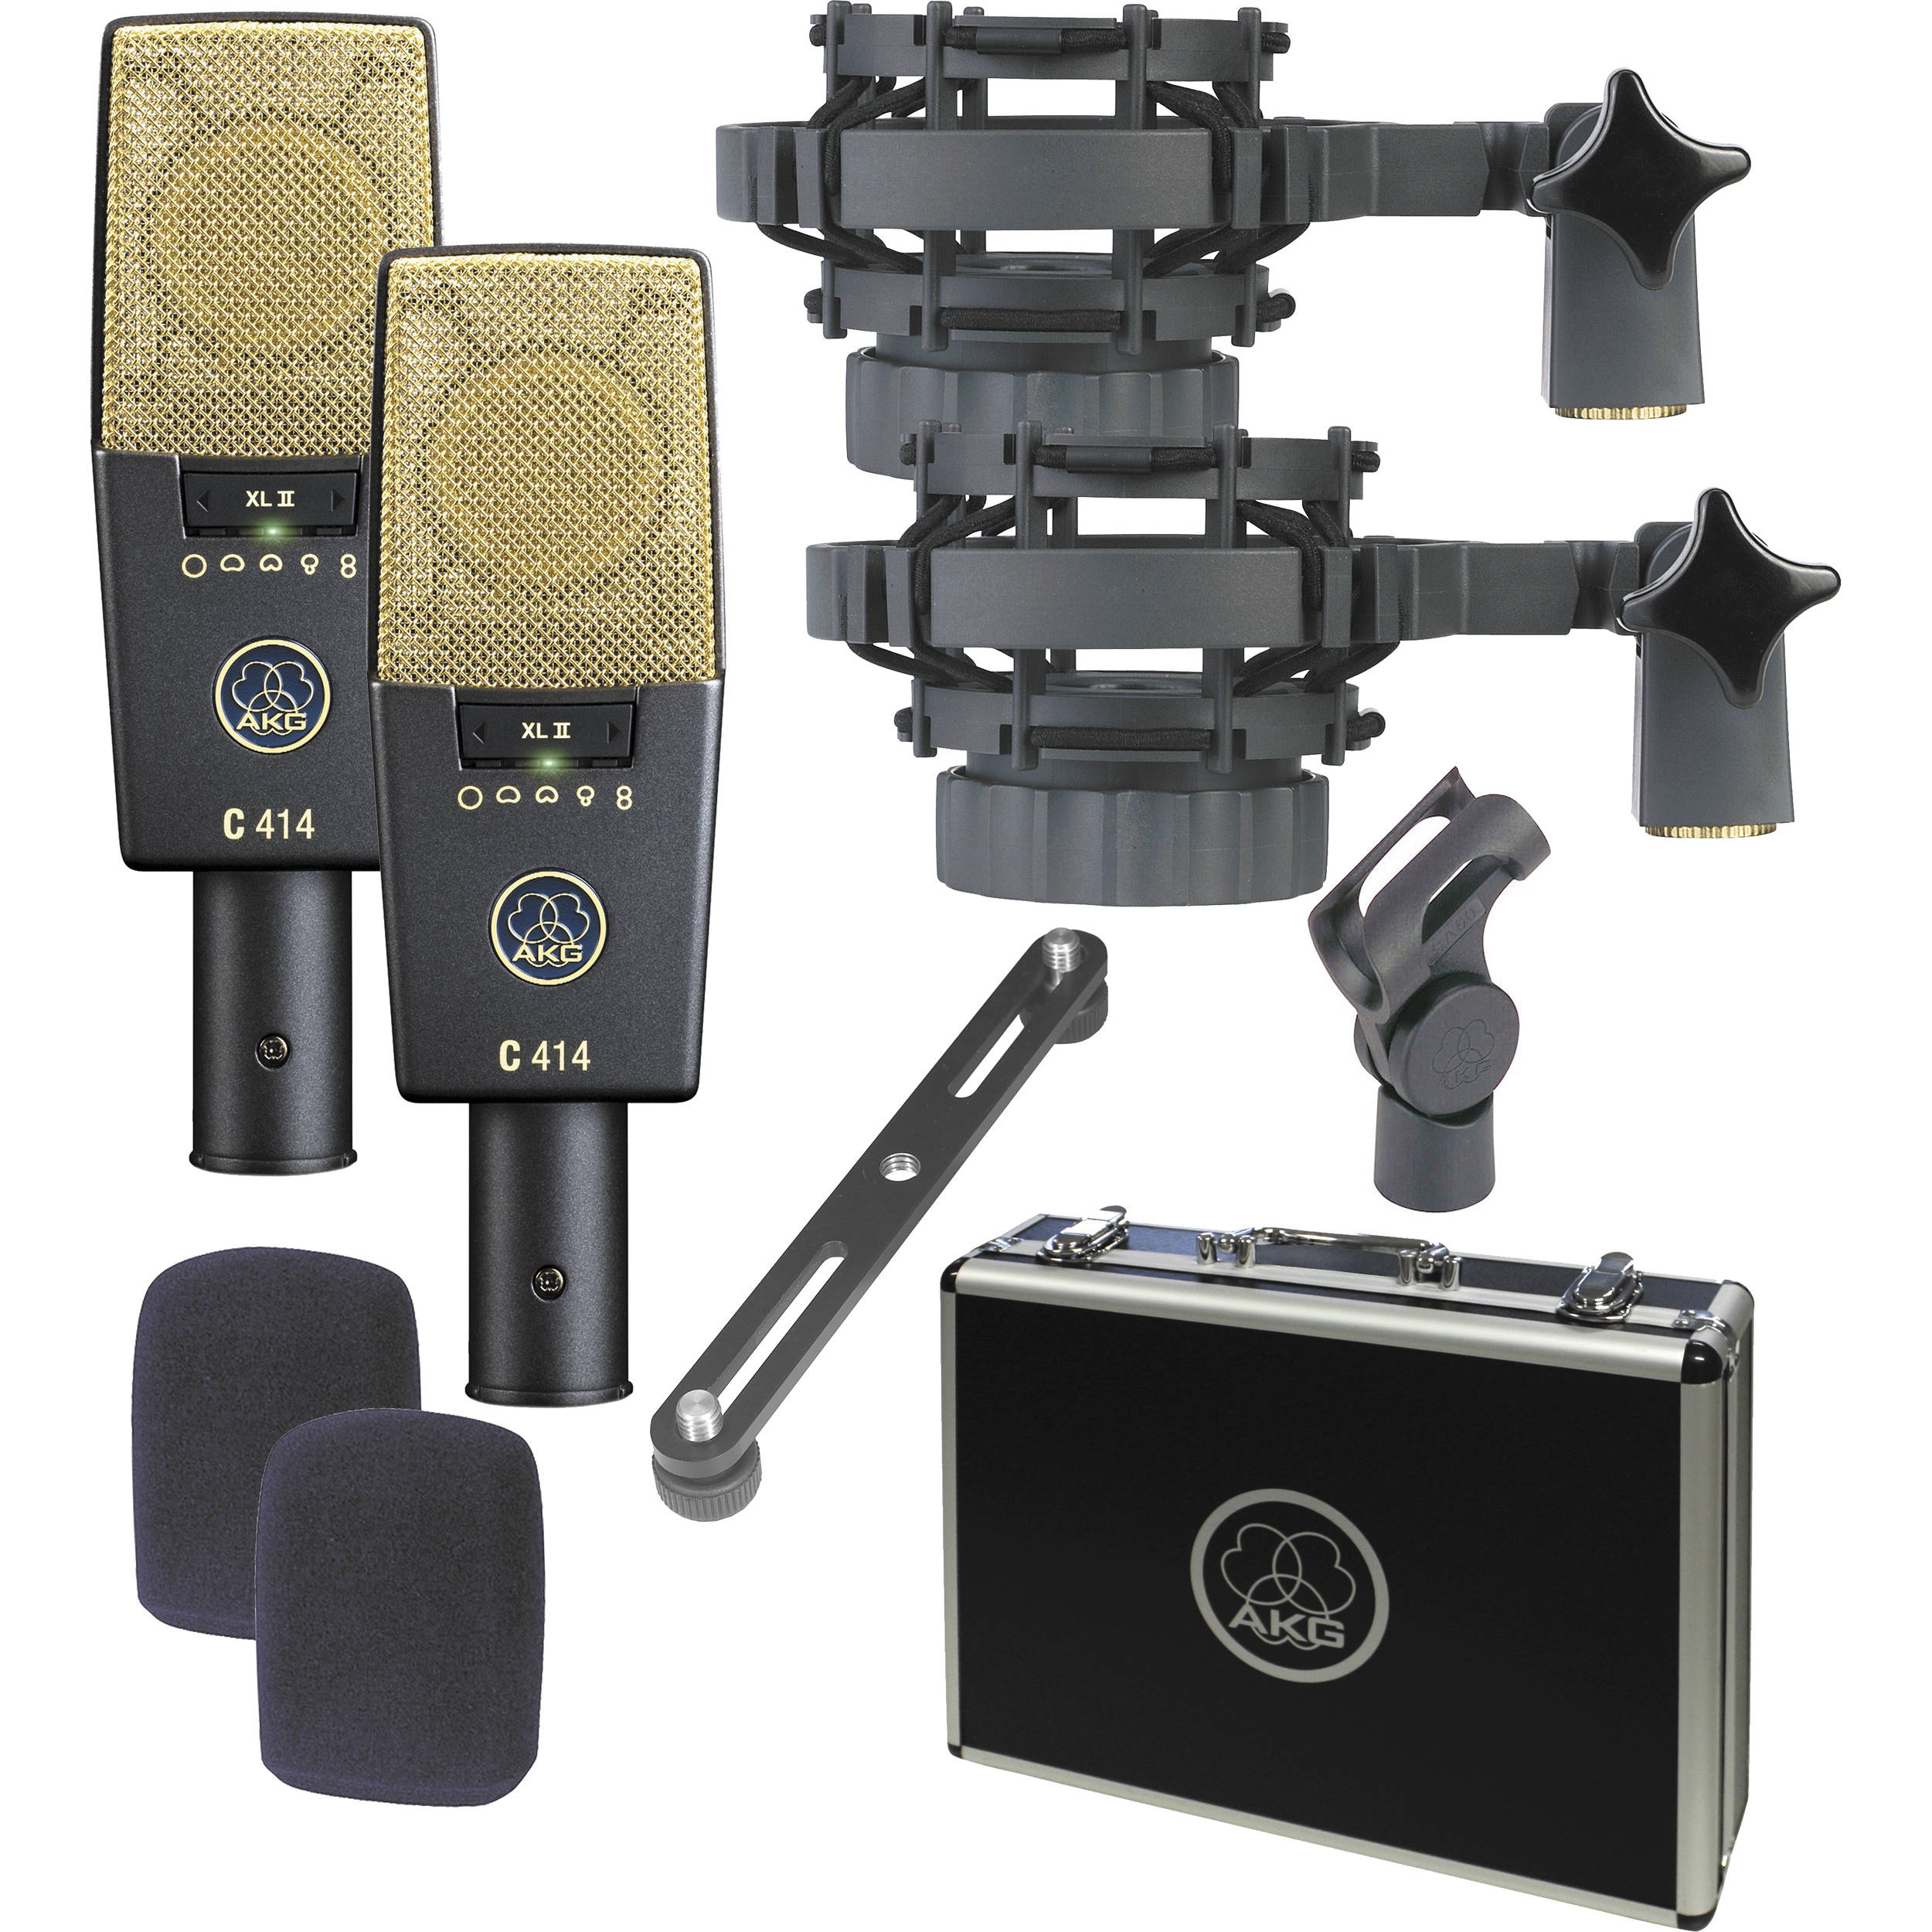 AKG C 414 XL II/ST Large Diaphragm Condenser Microphone (Matched Pair)